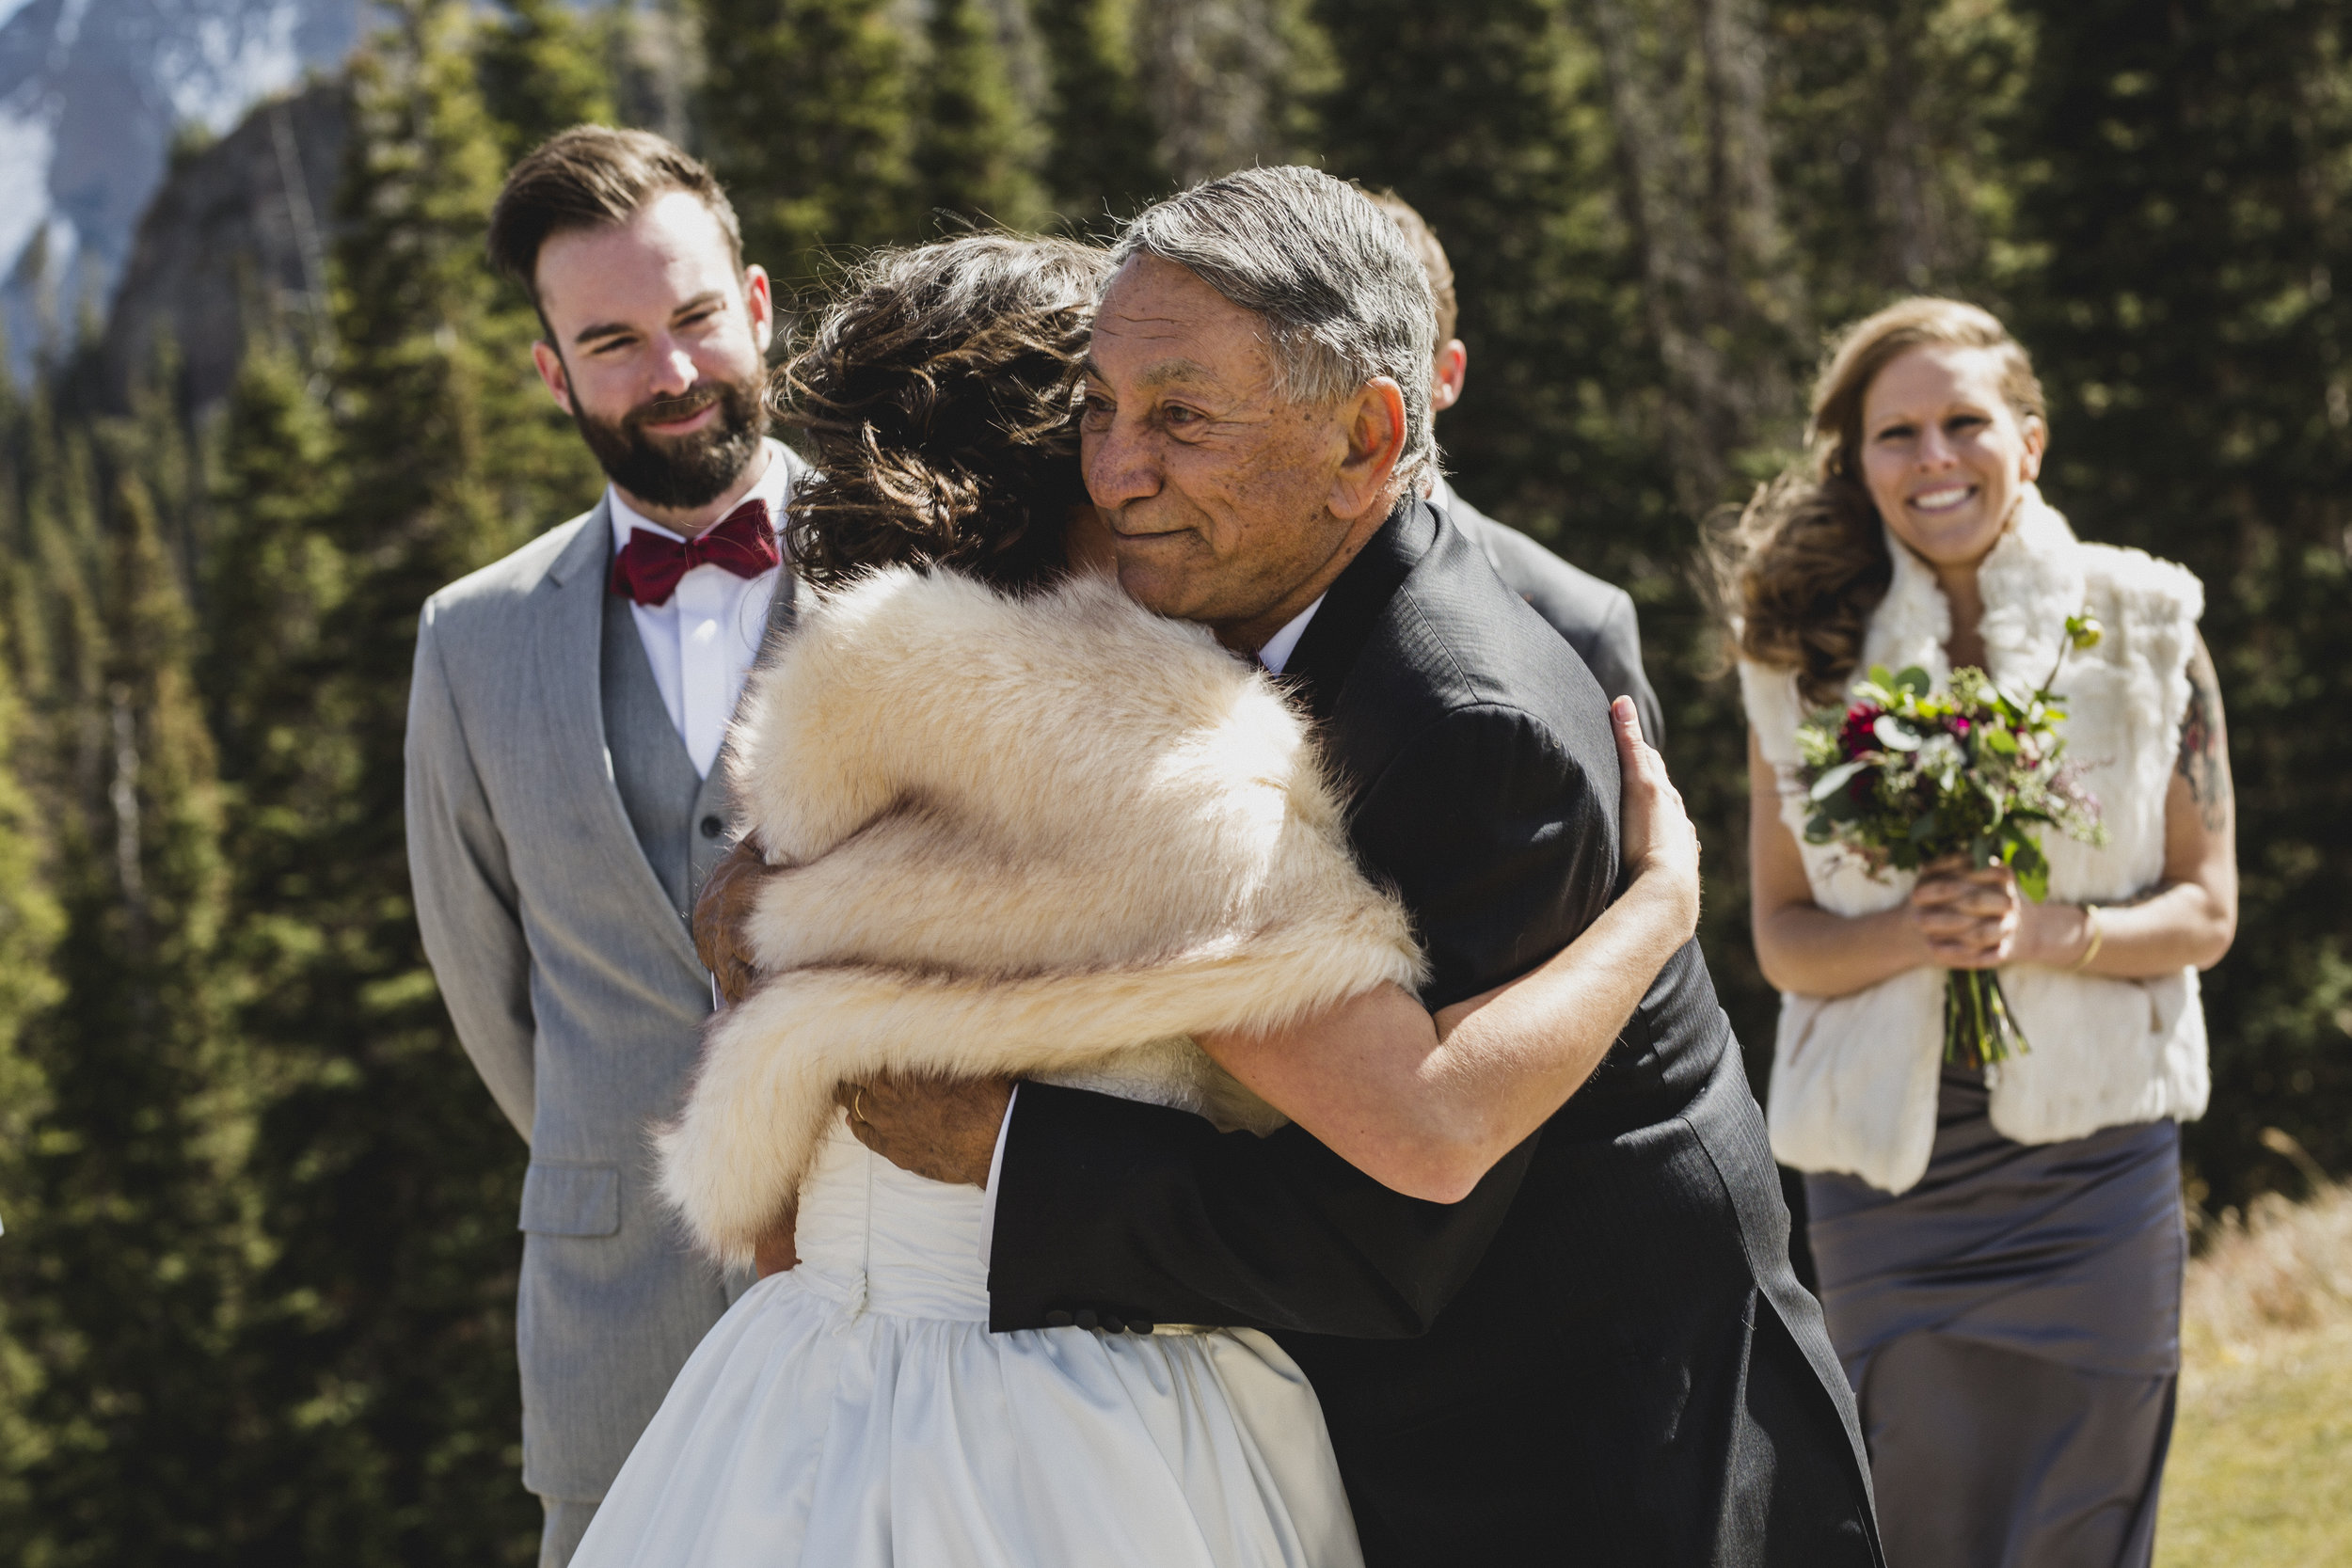 NE-LeahandAshtonphotography-Telluride-Wedding-Photography-9312.jpg